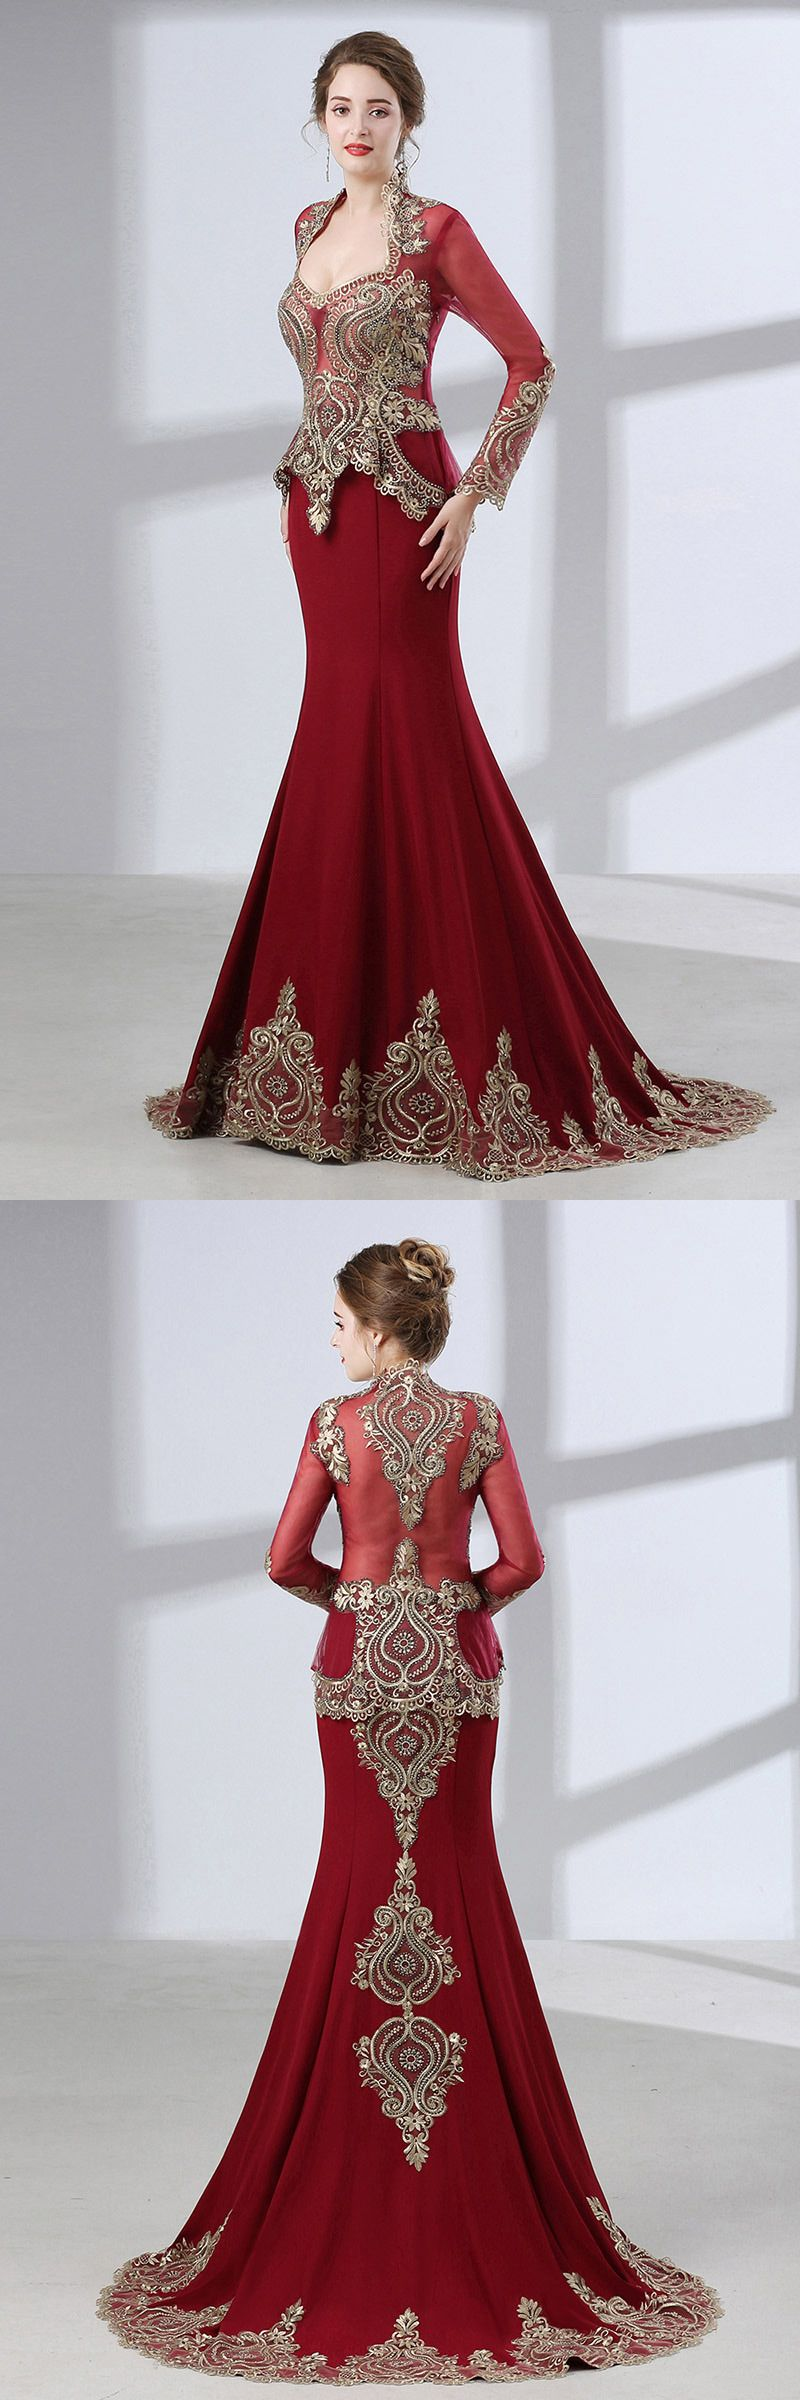 Lace dress with cape  Vintage Lace Trim Burgundy Wedding Dress Sleeved With Cape CH